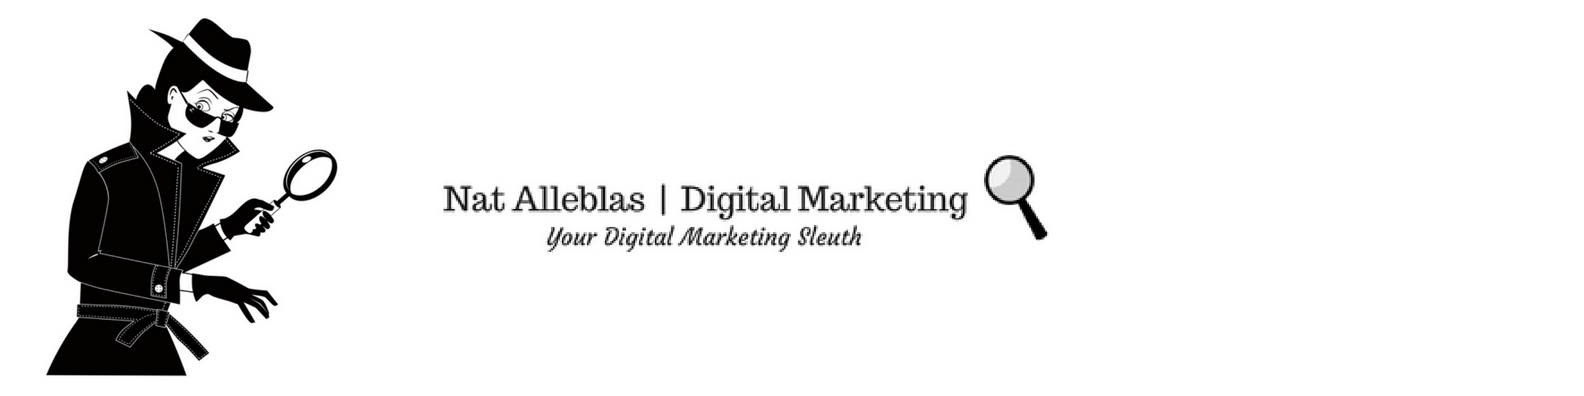 SEO digital marketing melbourne sydney brisbane